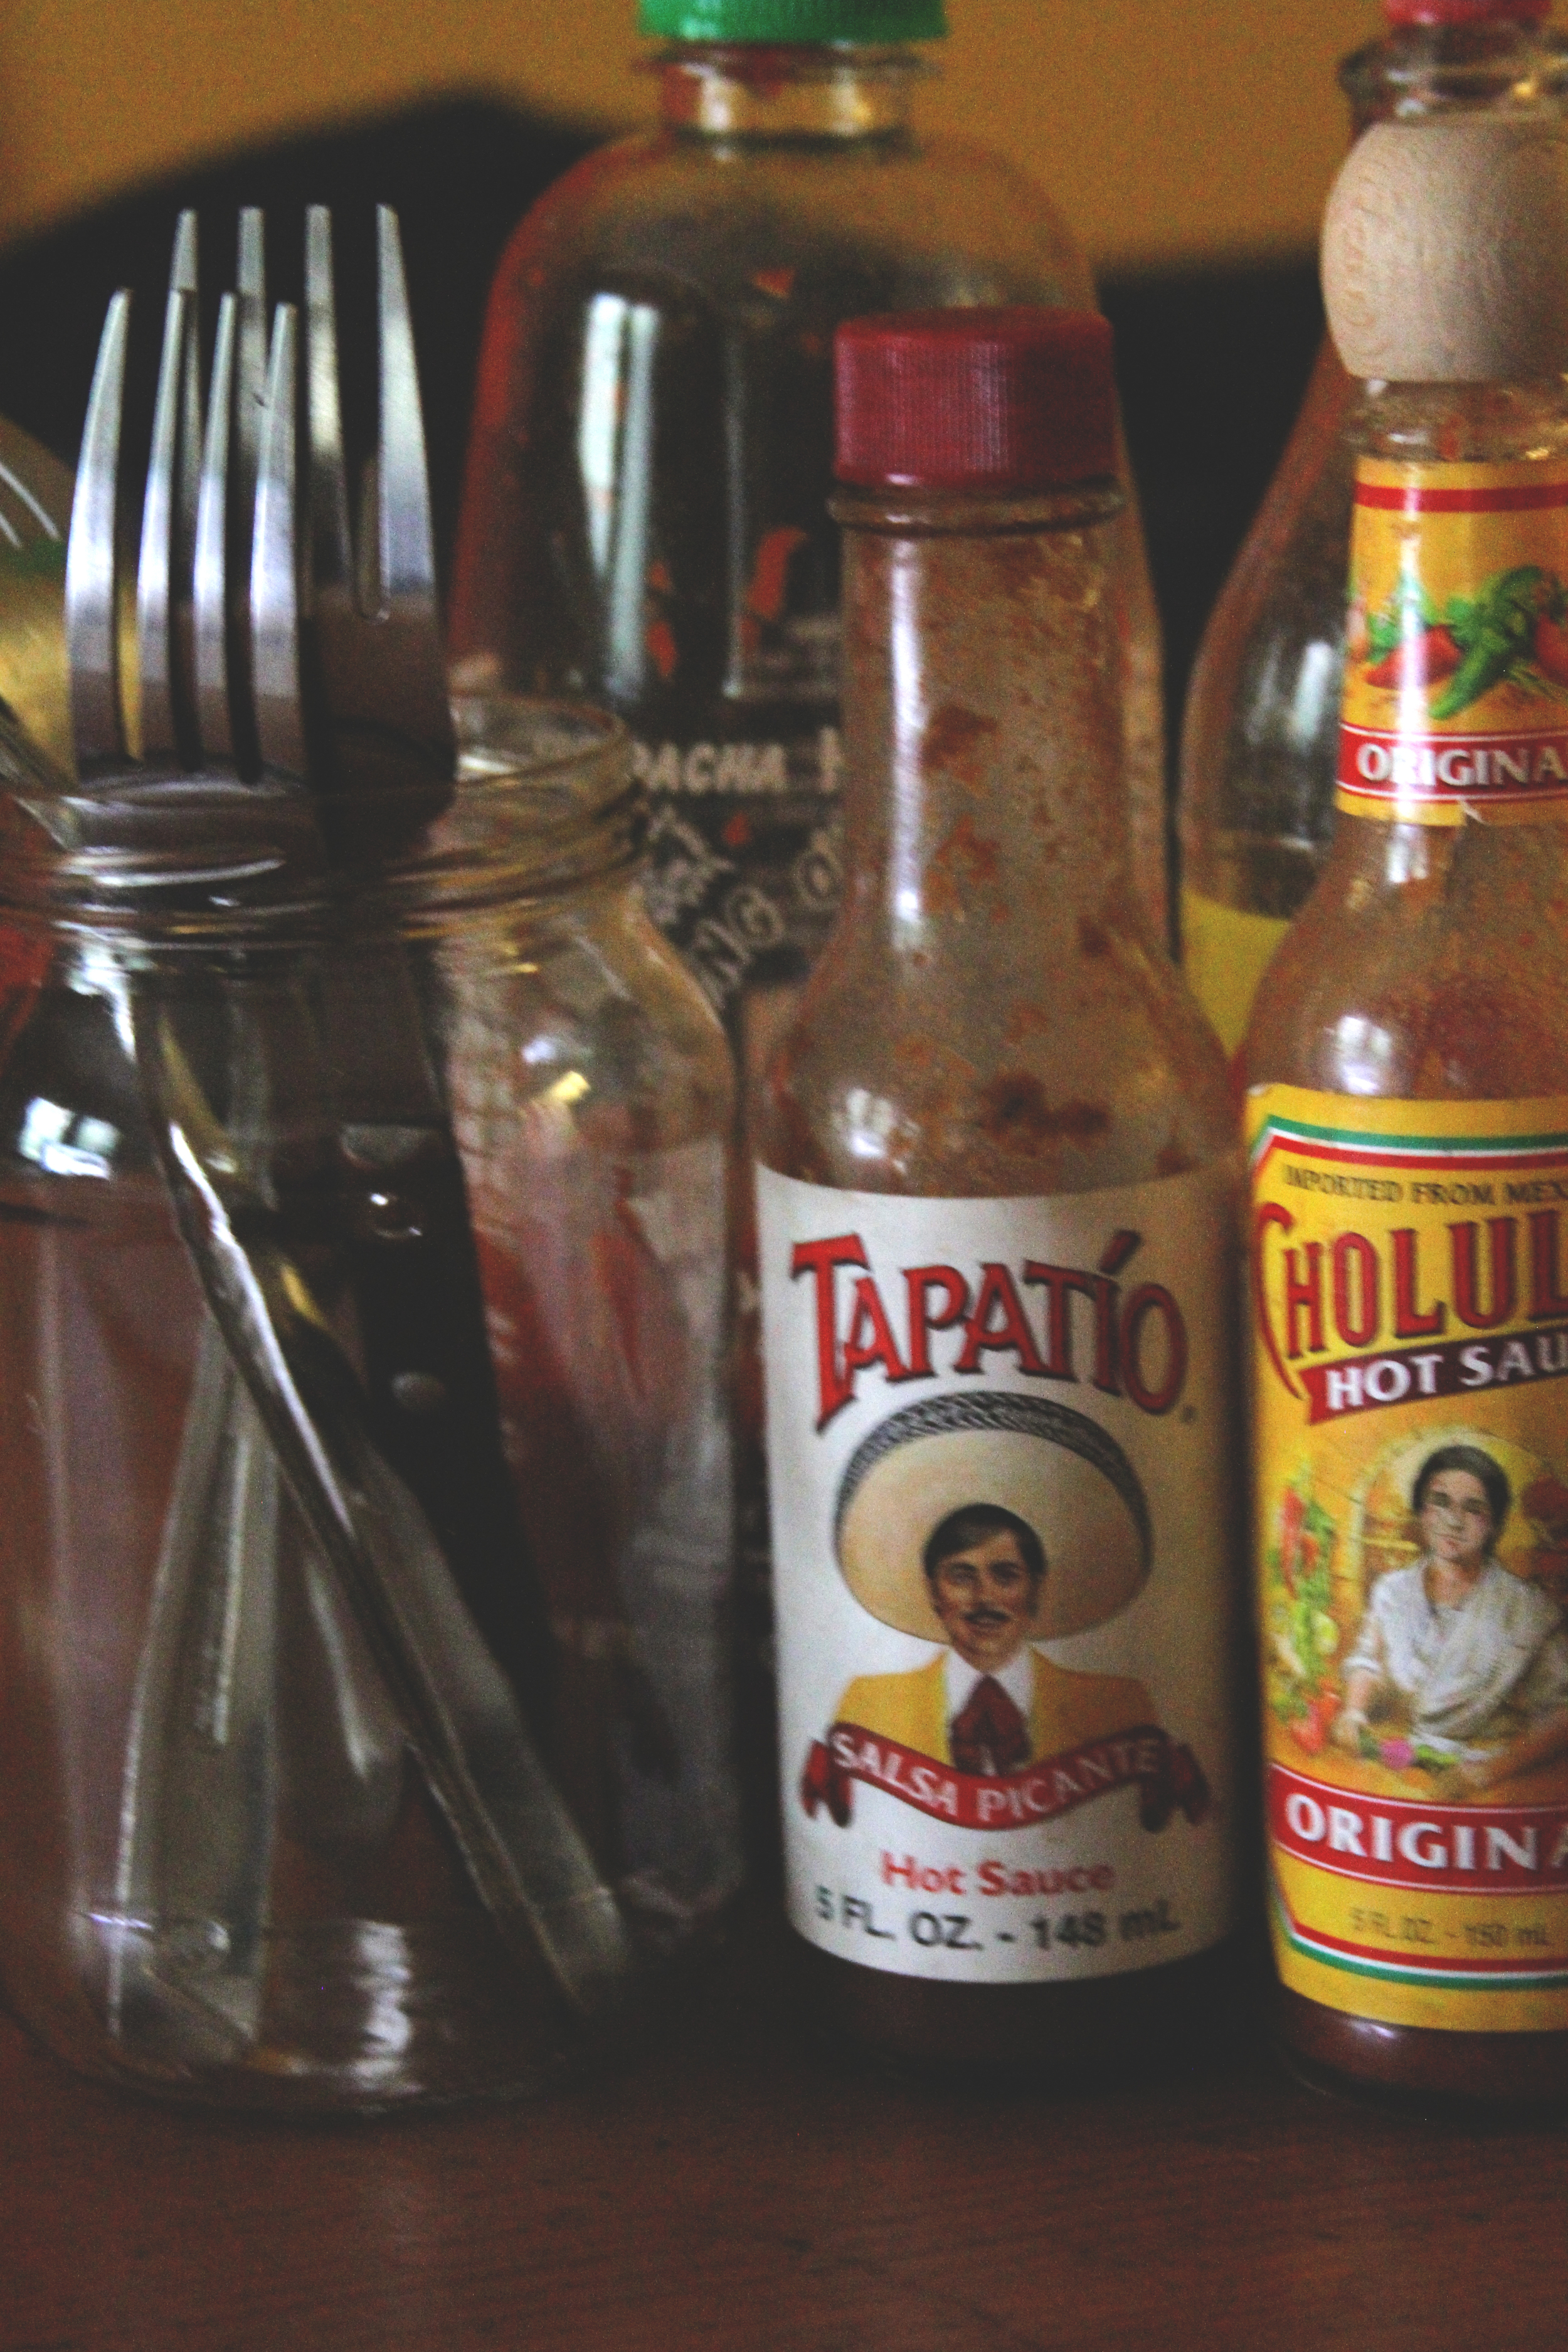 For this photo, I captured the most used items in my house: utensils and hot sauce. This says a lot about the style in which my housemates and i love to consume our food—spicy with a kick of flavor. I took a shot here at object framing and the light is casting an attached shadow on the objects.